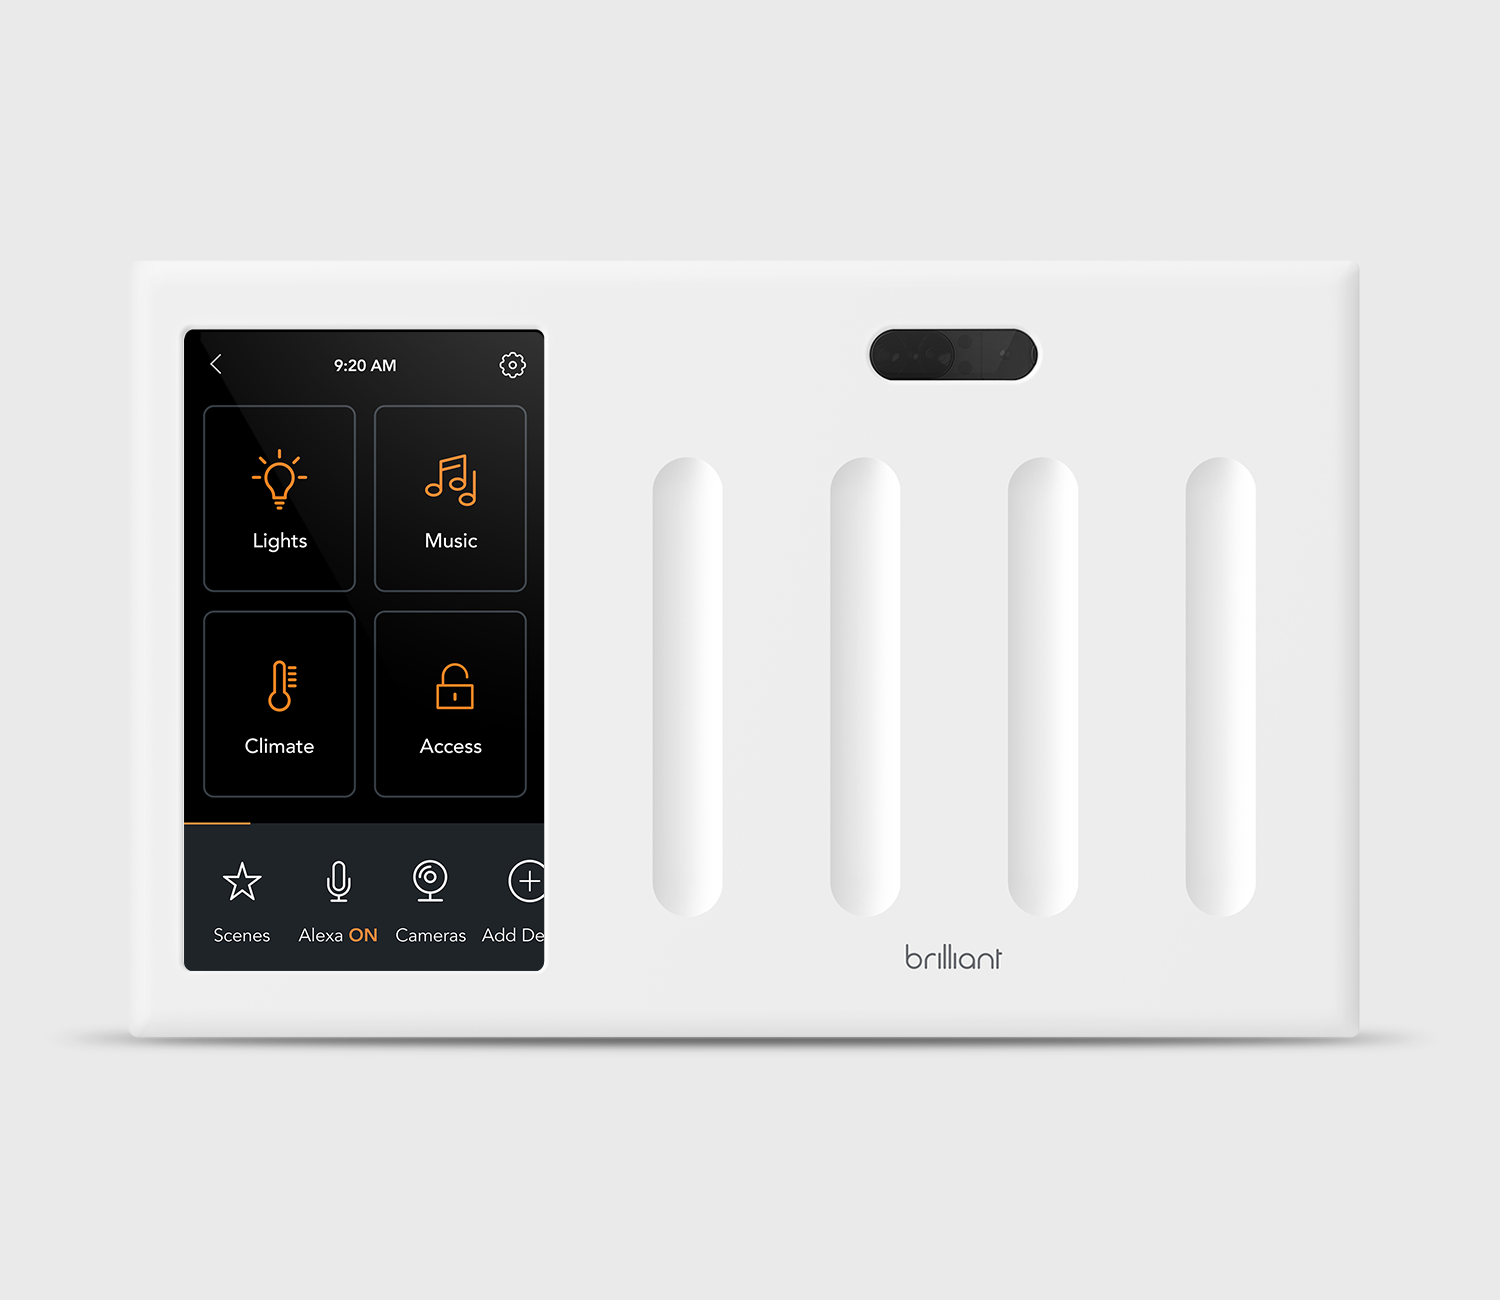 Brilliant All-in-One 4 Switch Smart Home Control